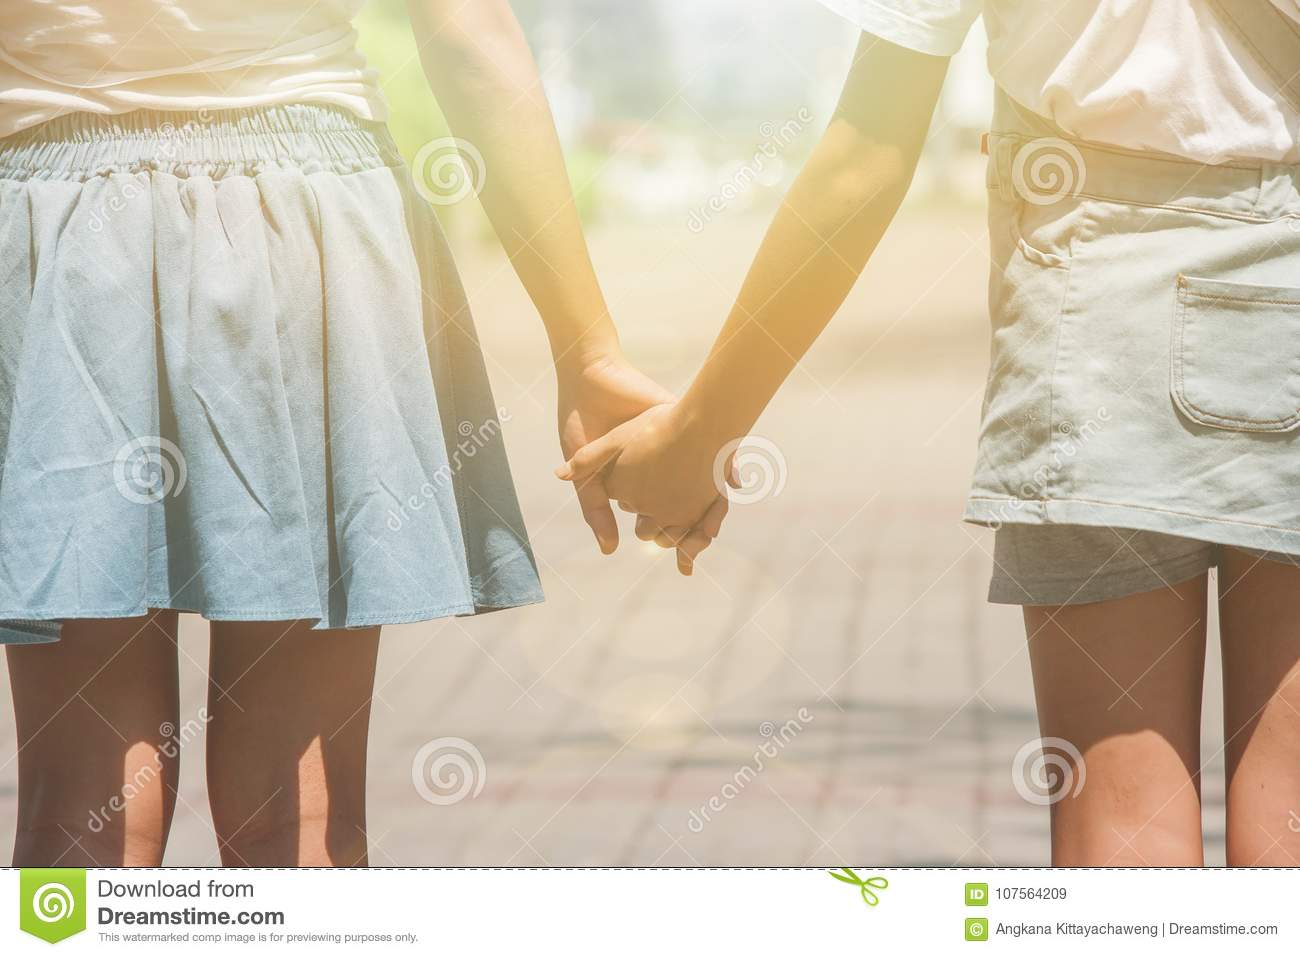 Adorable Family Concept : Two sisters walking on walkway at public park and holding hand together.